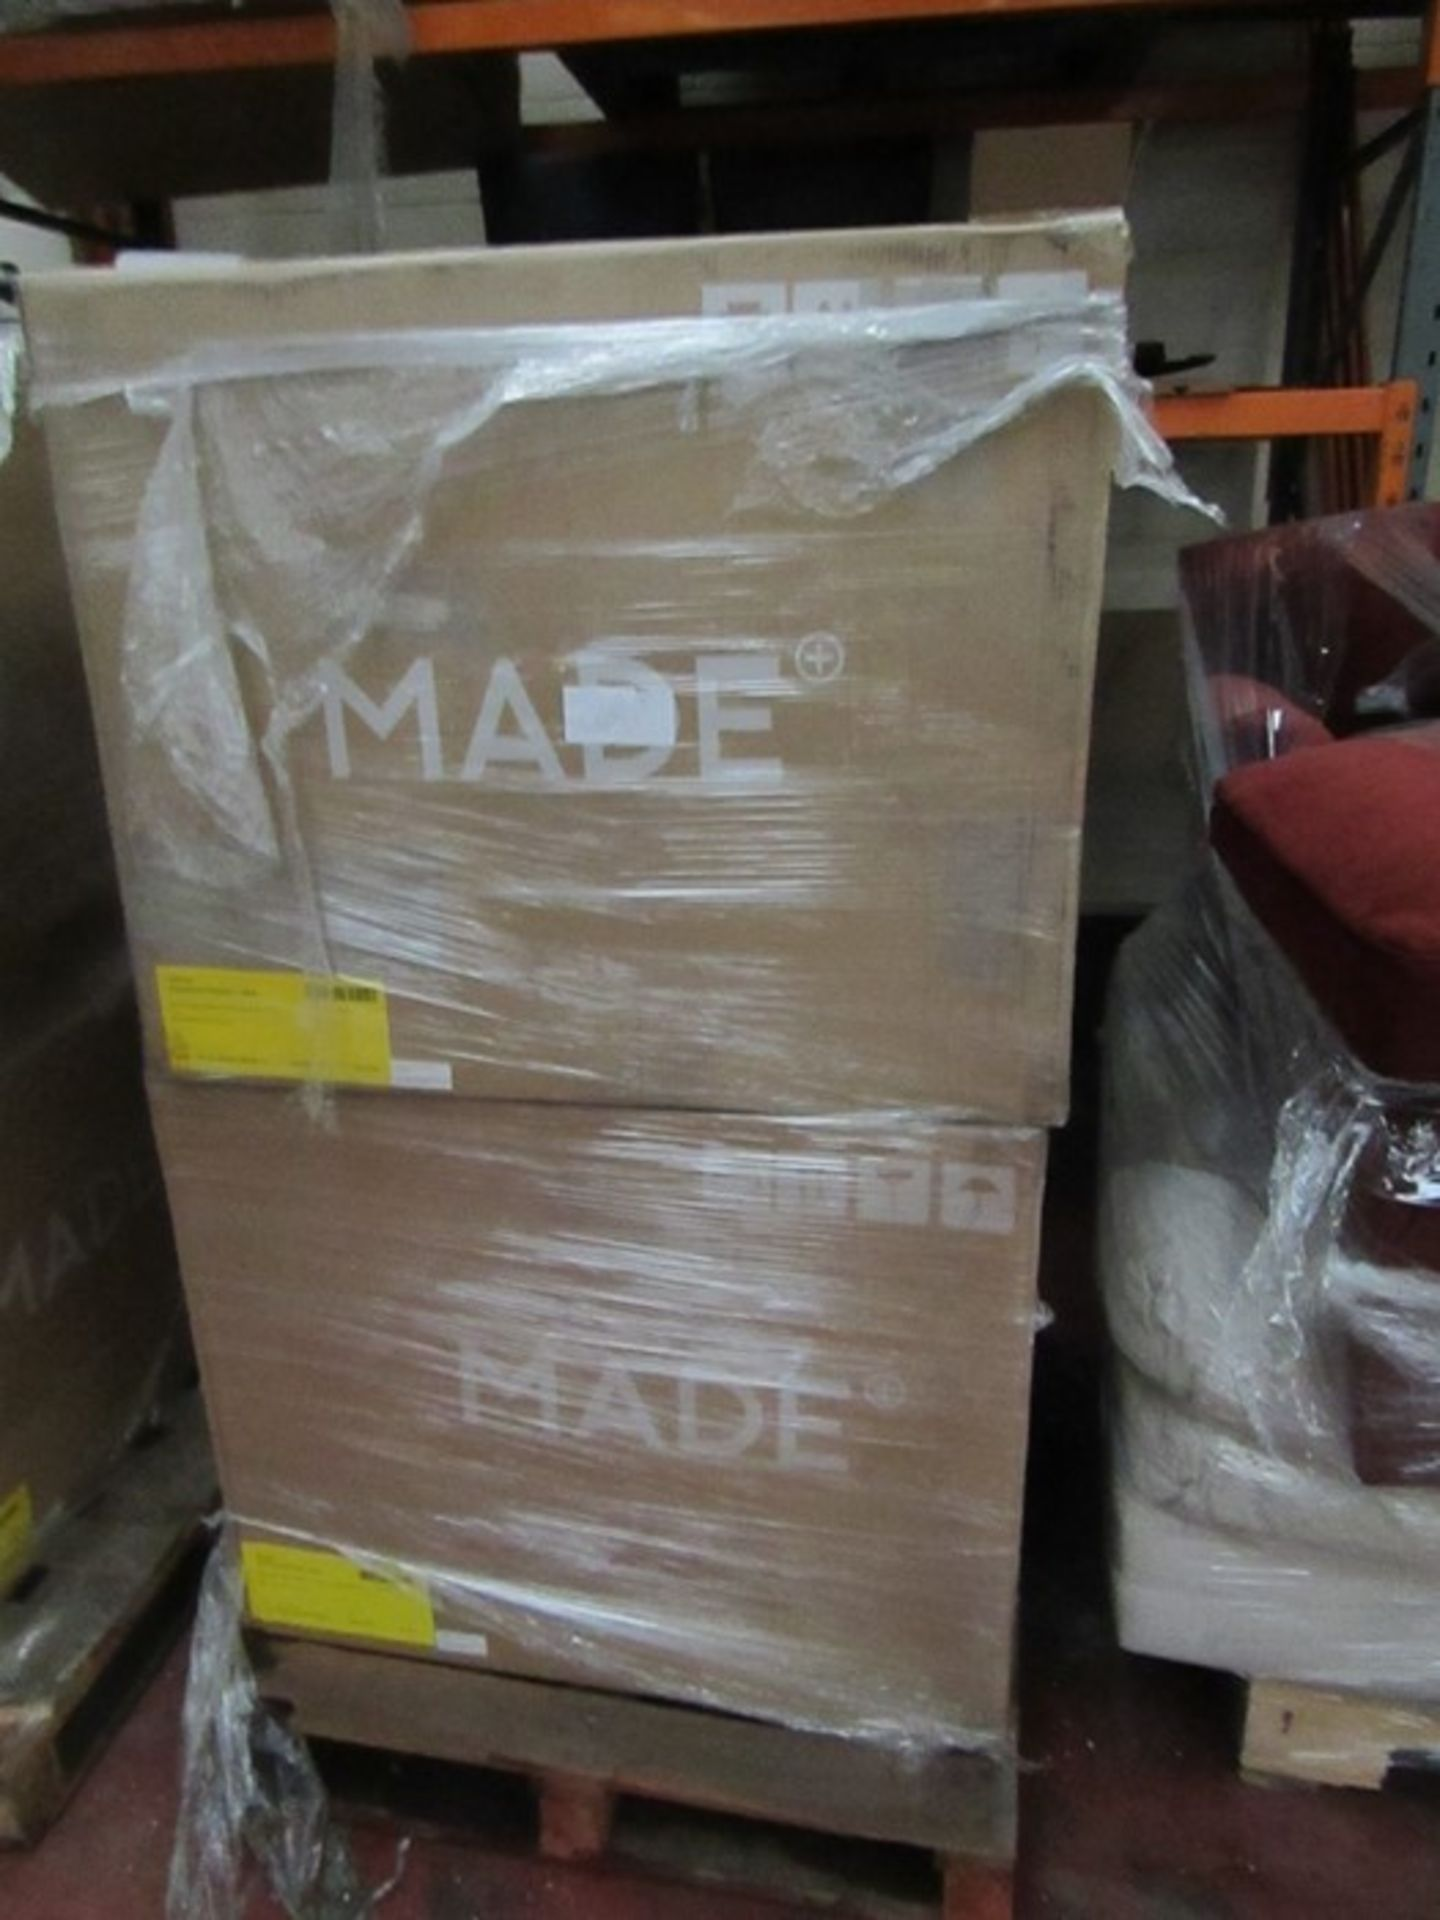   16x   PALLETS OF MADE.COM UNMANIFESTED SOFA PARTS, THESE ARE FROM VARIOUS SOFAS AND DONT APPEAR TO - Image 4 of 34